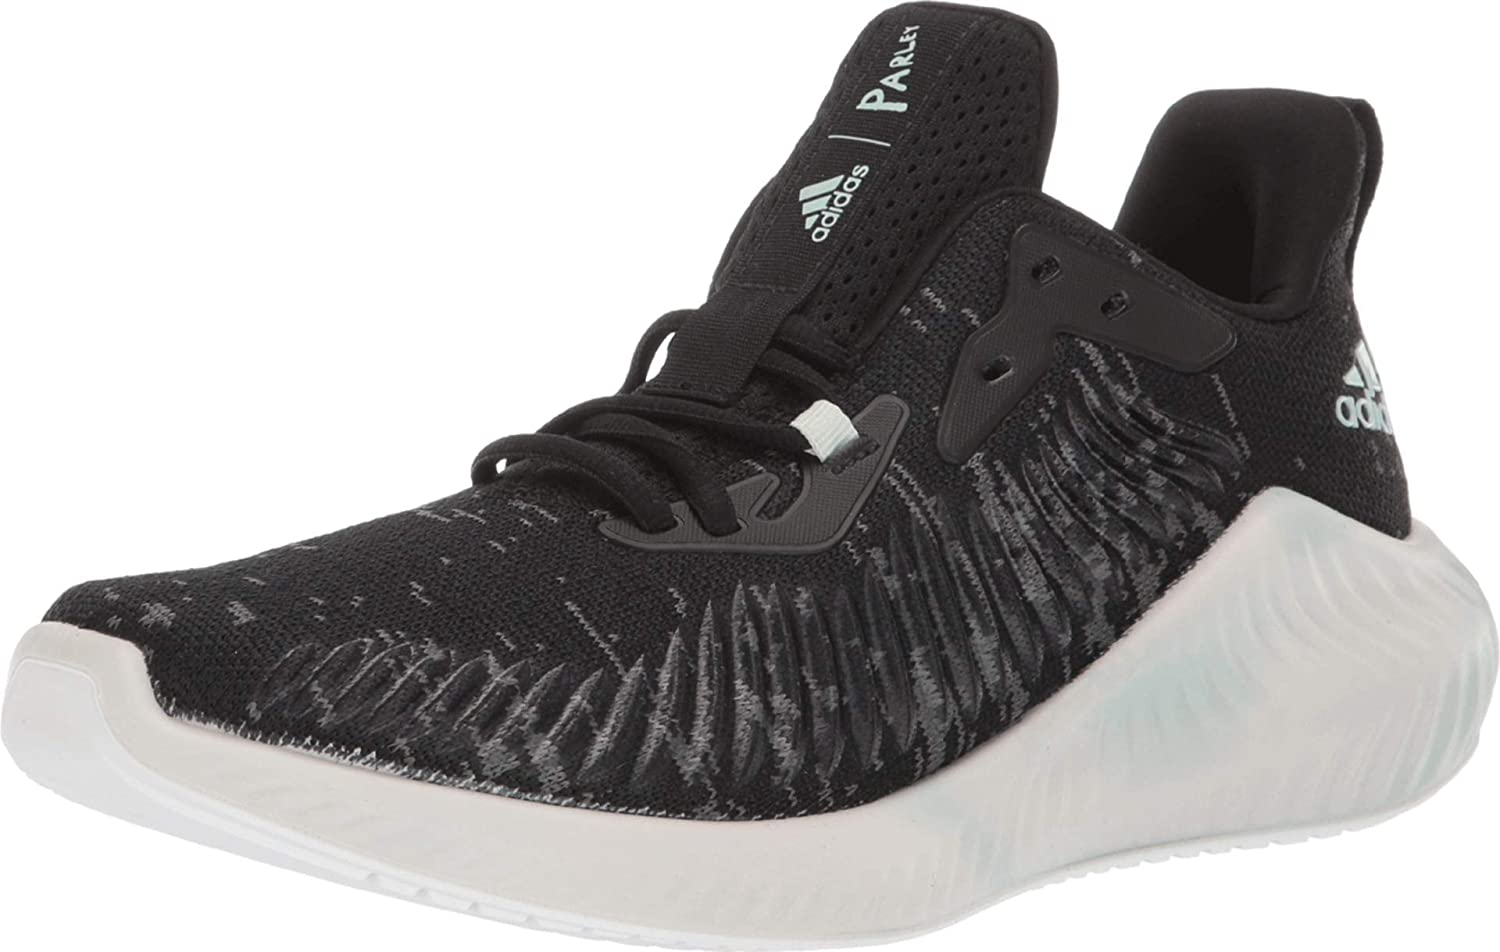 adidas Alphabounce Parley Running Shoe